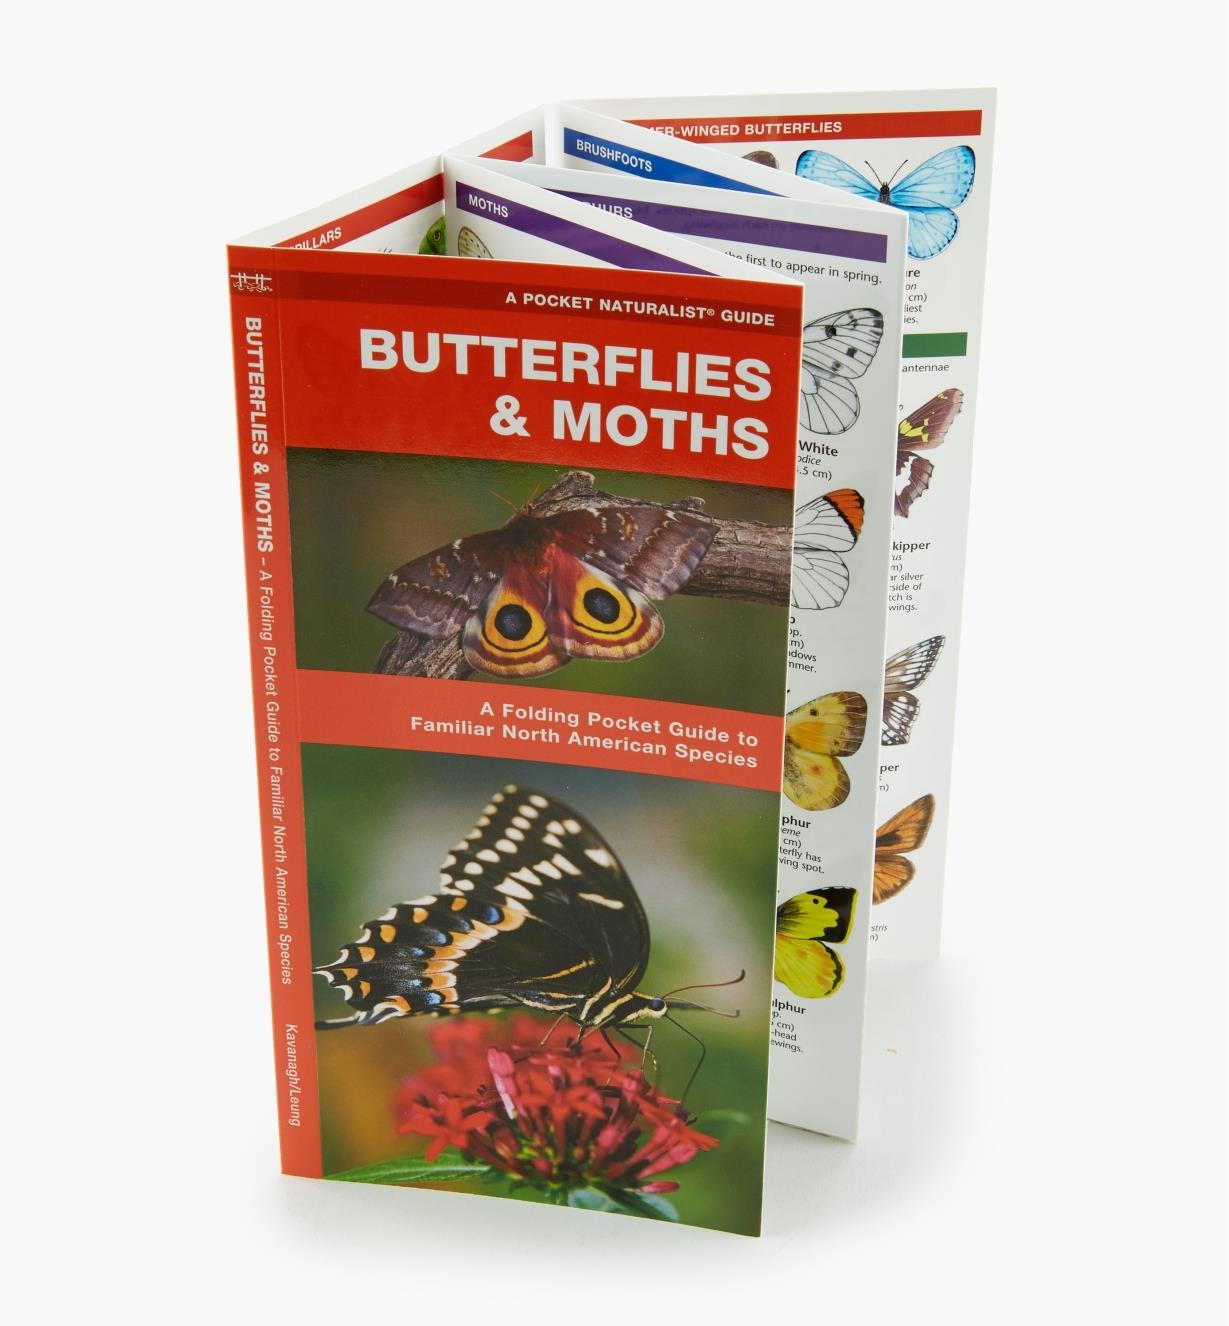 LA263 - Butterflies & Moths Pocket Guide